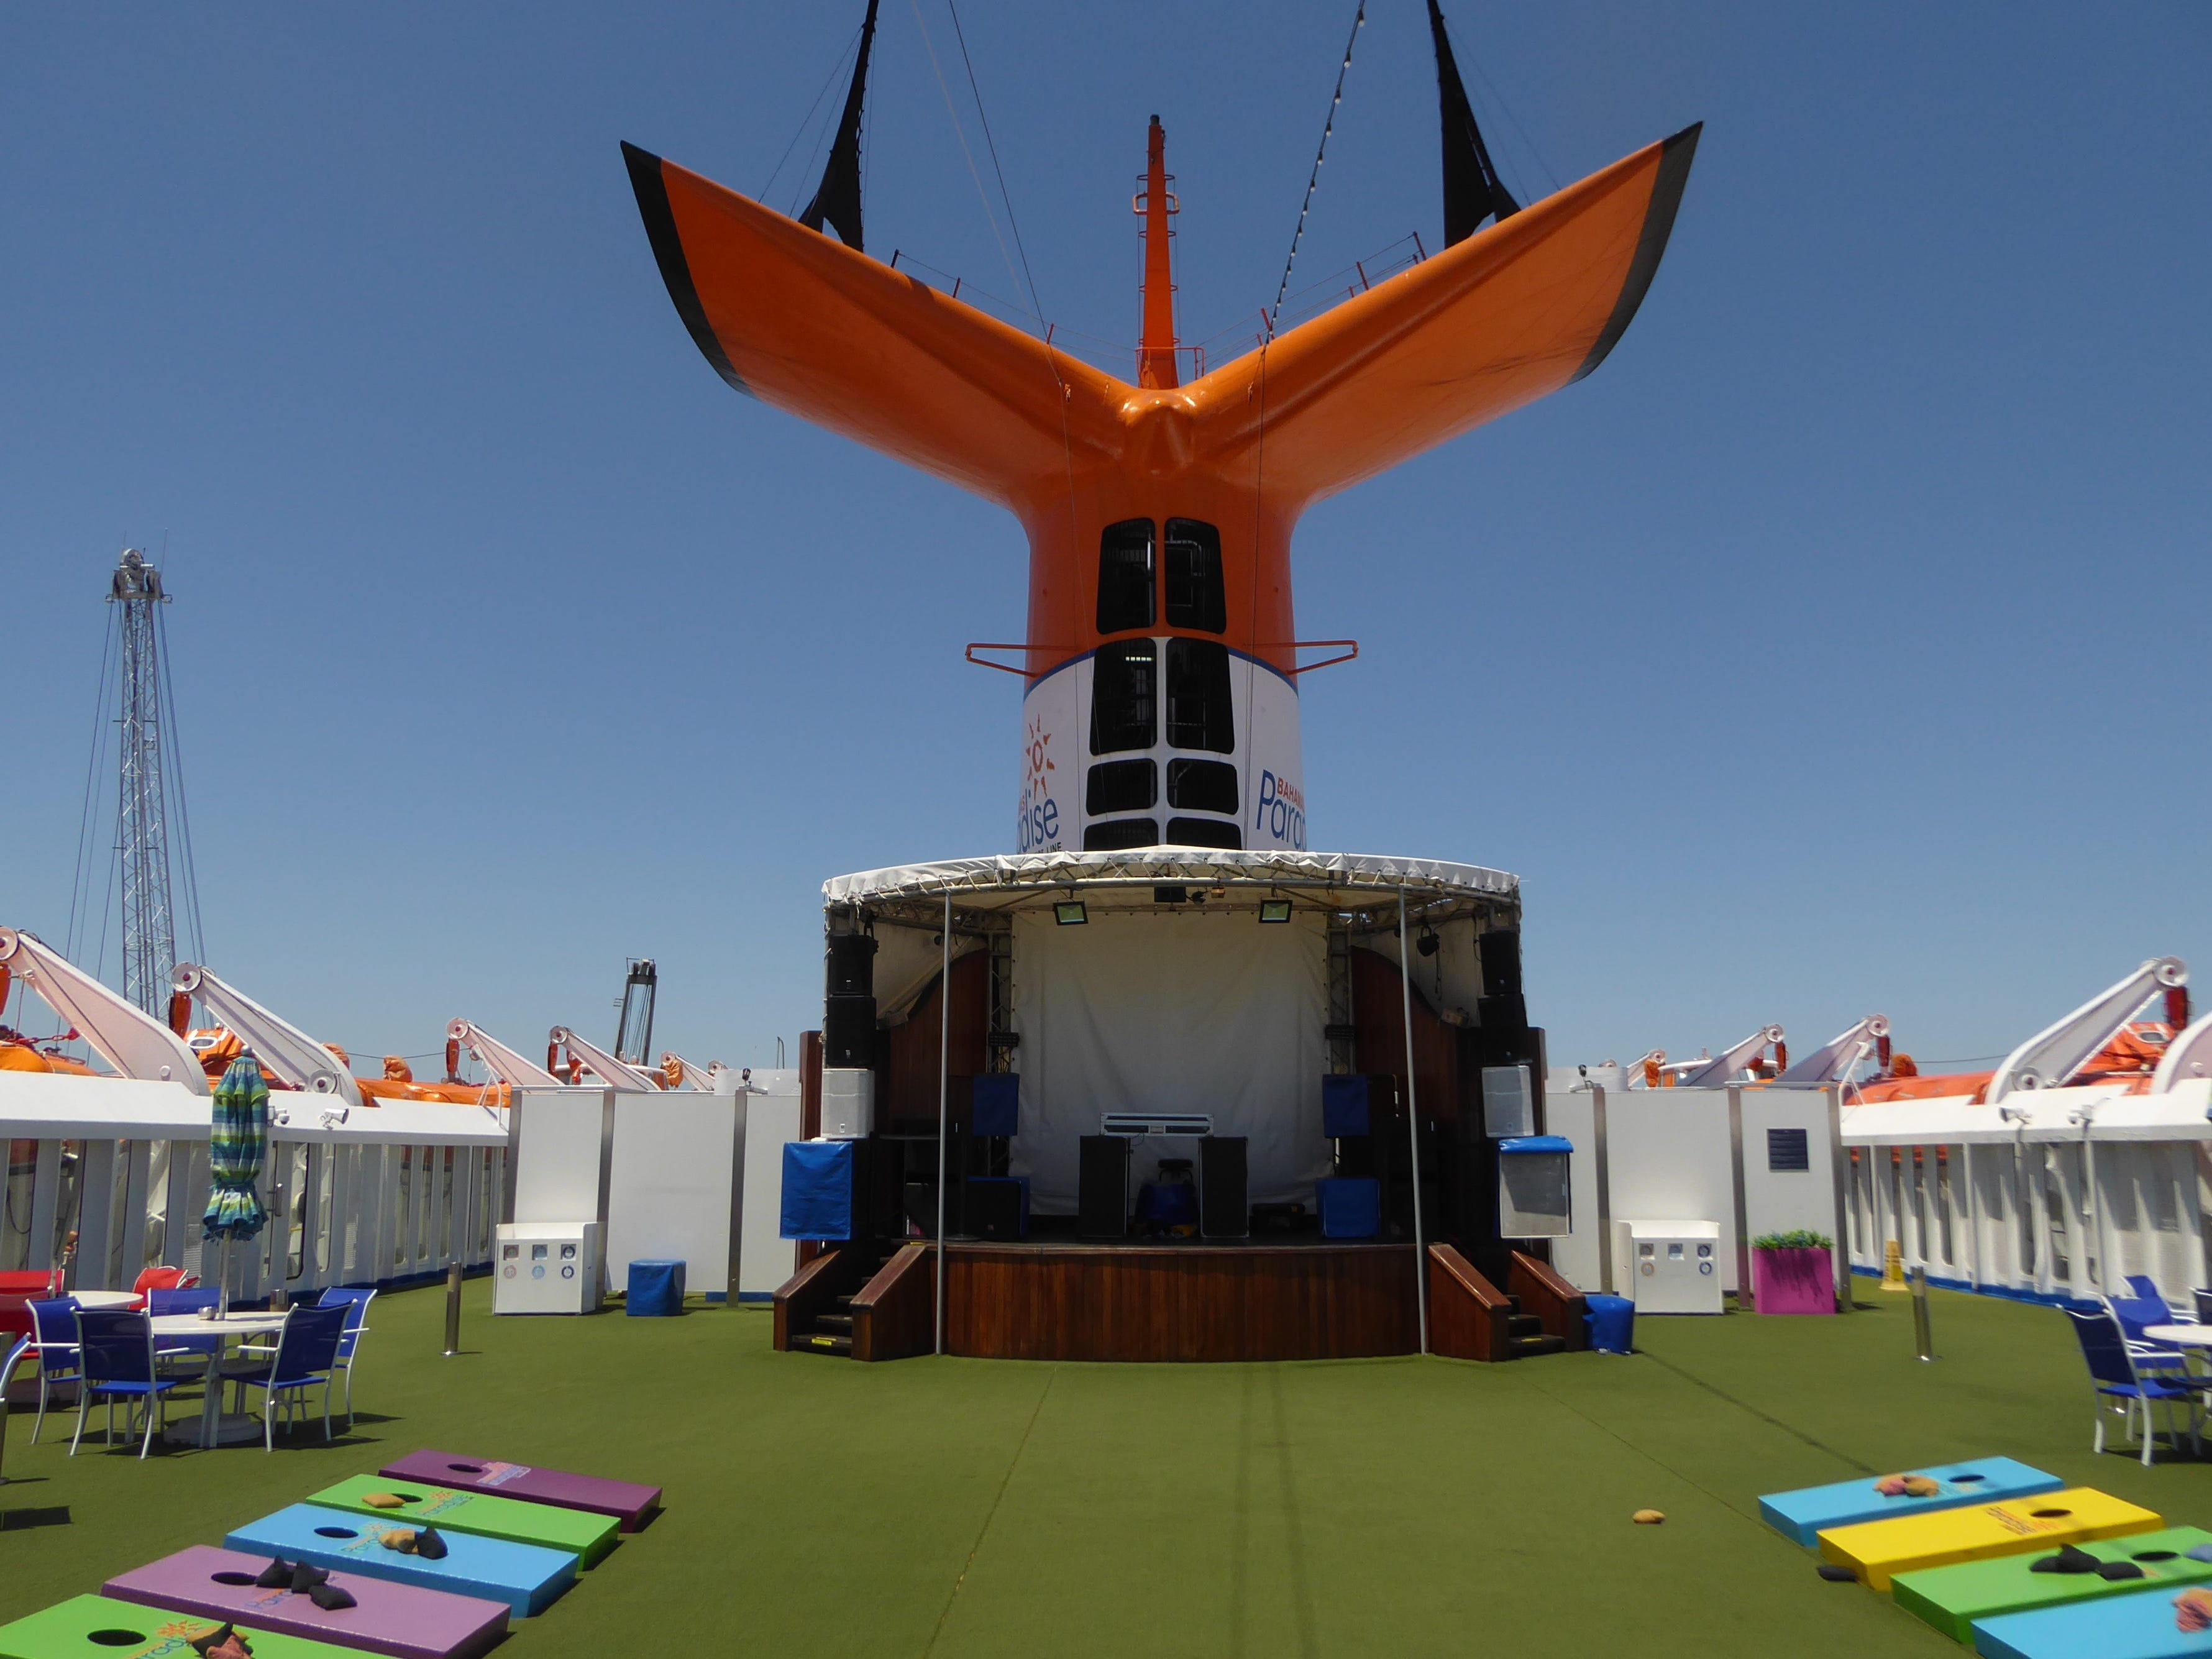 The aft portion of Venus Deck is home to a stage and a wide-open deck space.